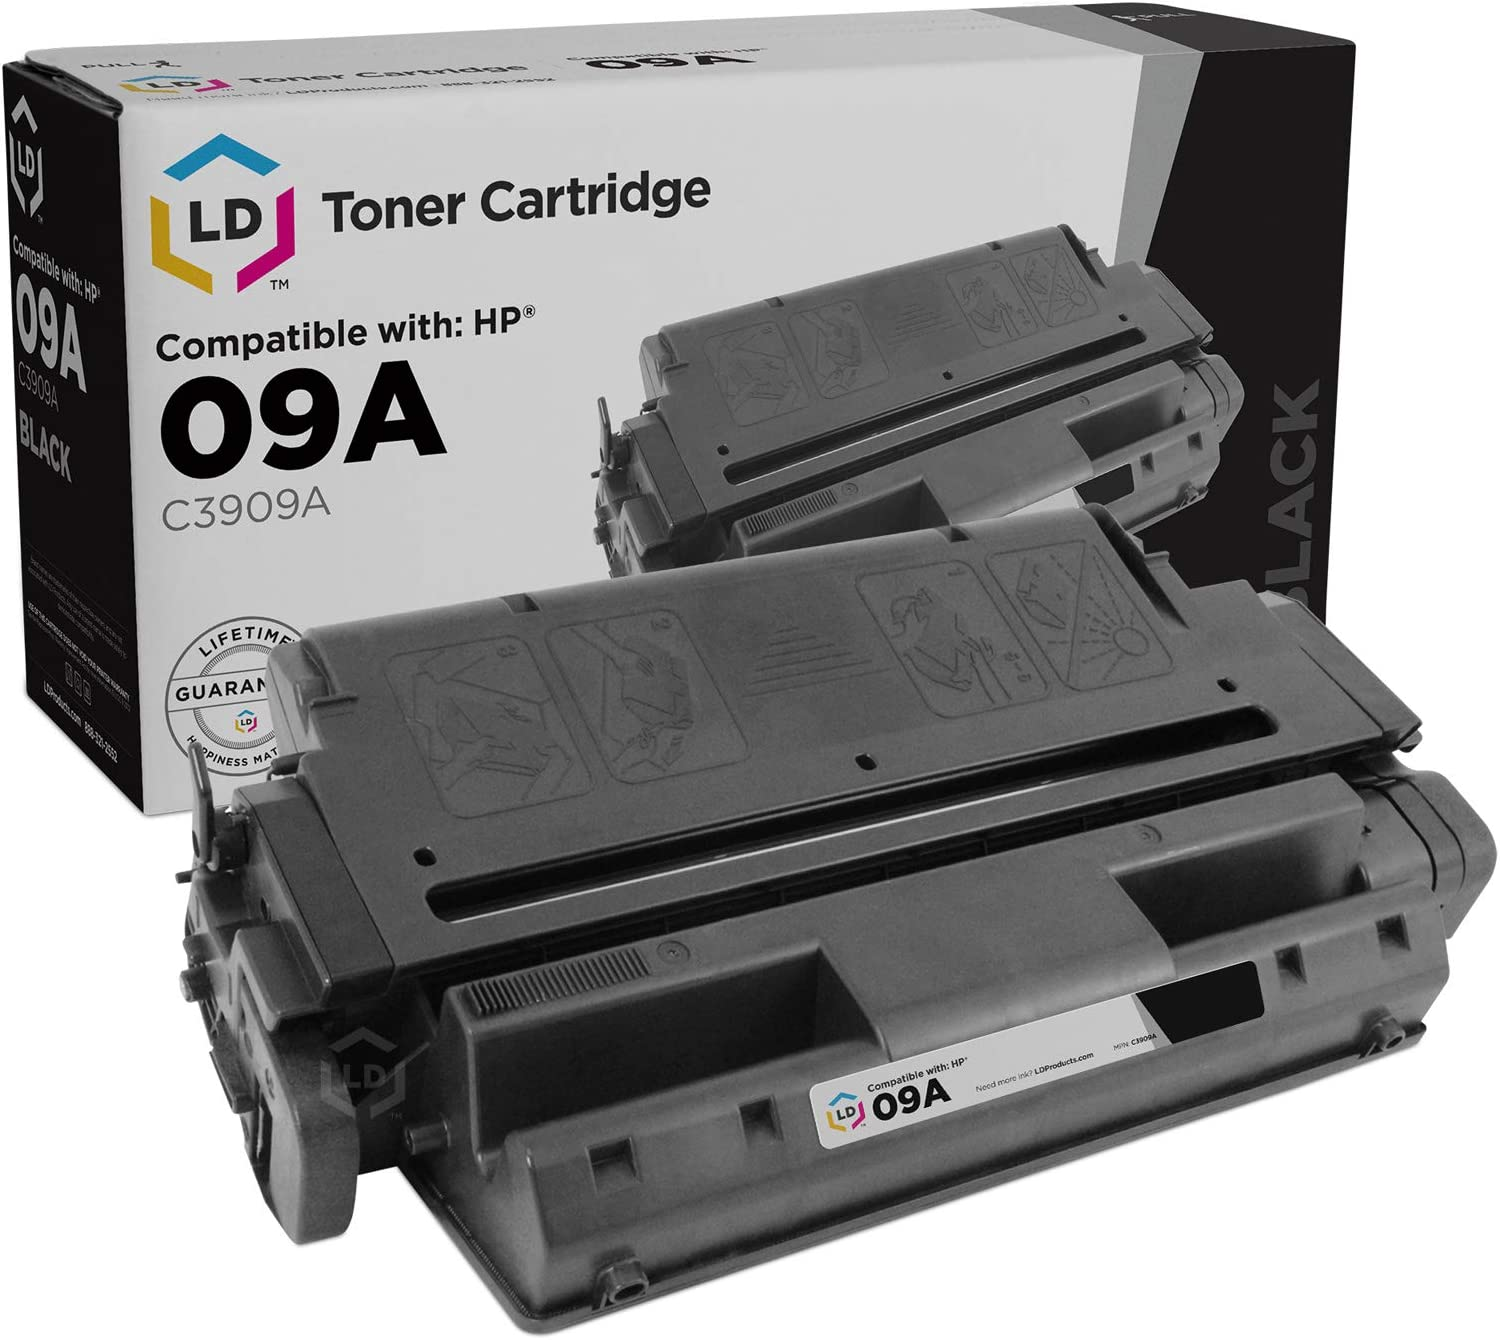 LD Remanufactured Toner Cartridge Replacement for HP 09A C3909A (Black)